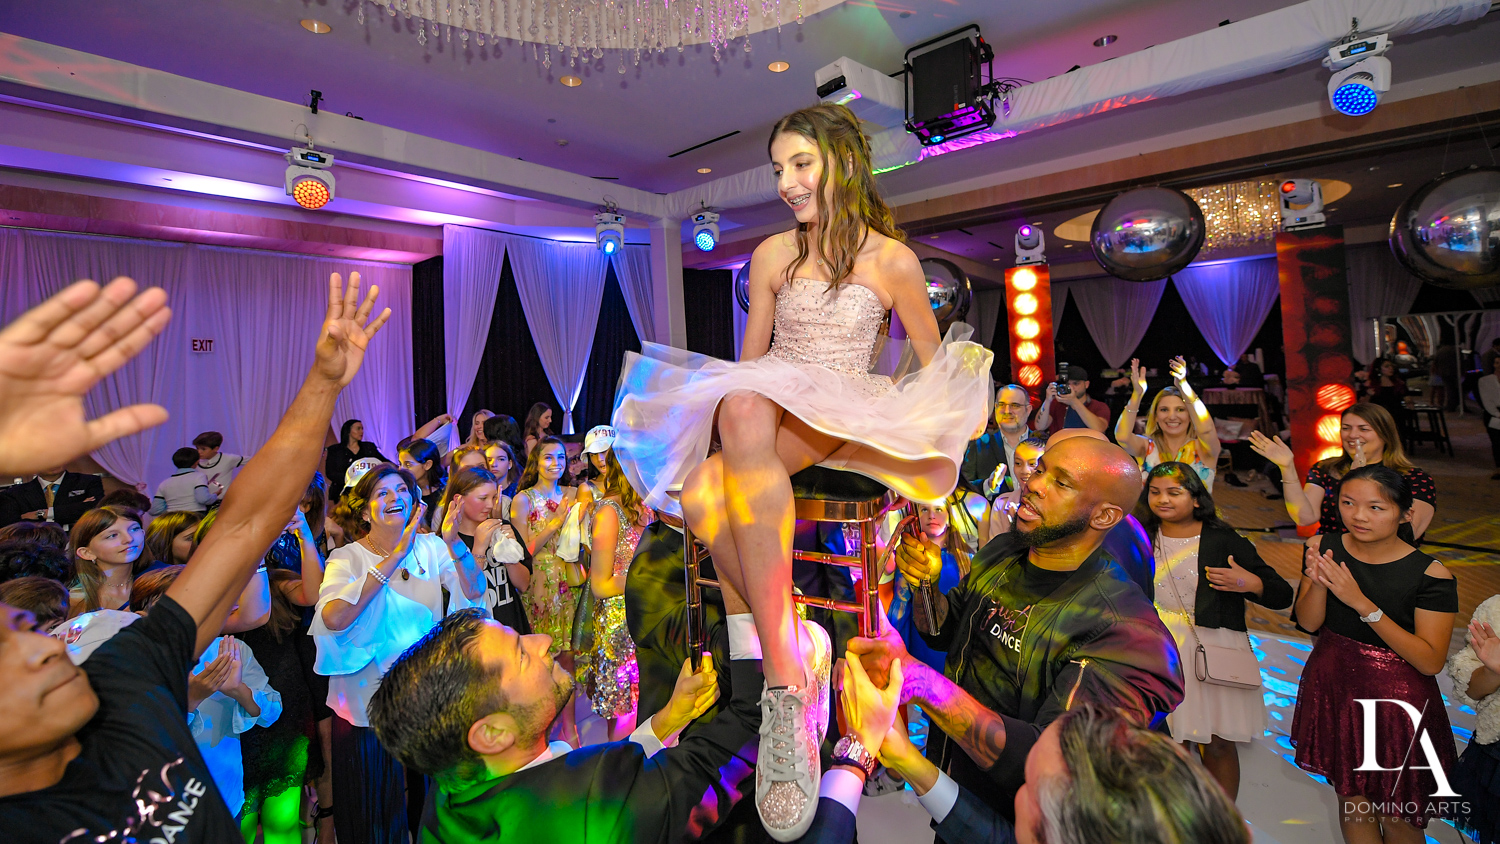 Hora at Masquerade Ball Bat Mitzvah at Ritz Carlton Fort Lauderdale by Domino Arts Photography